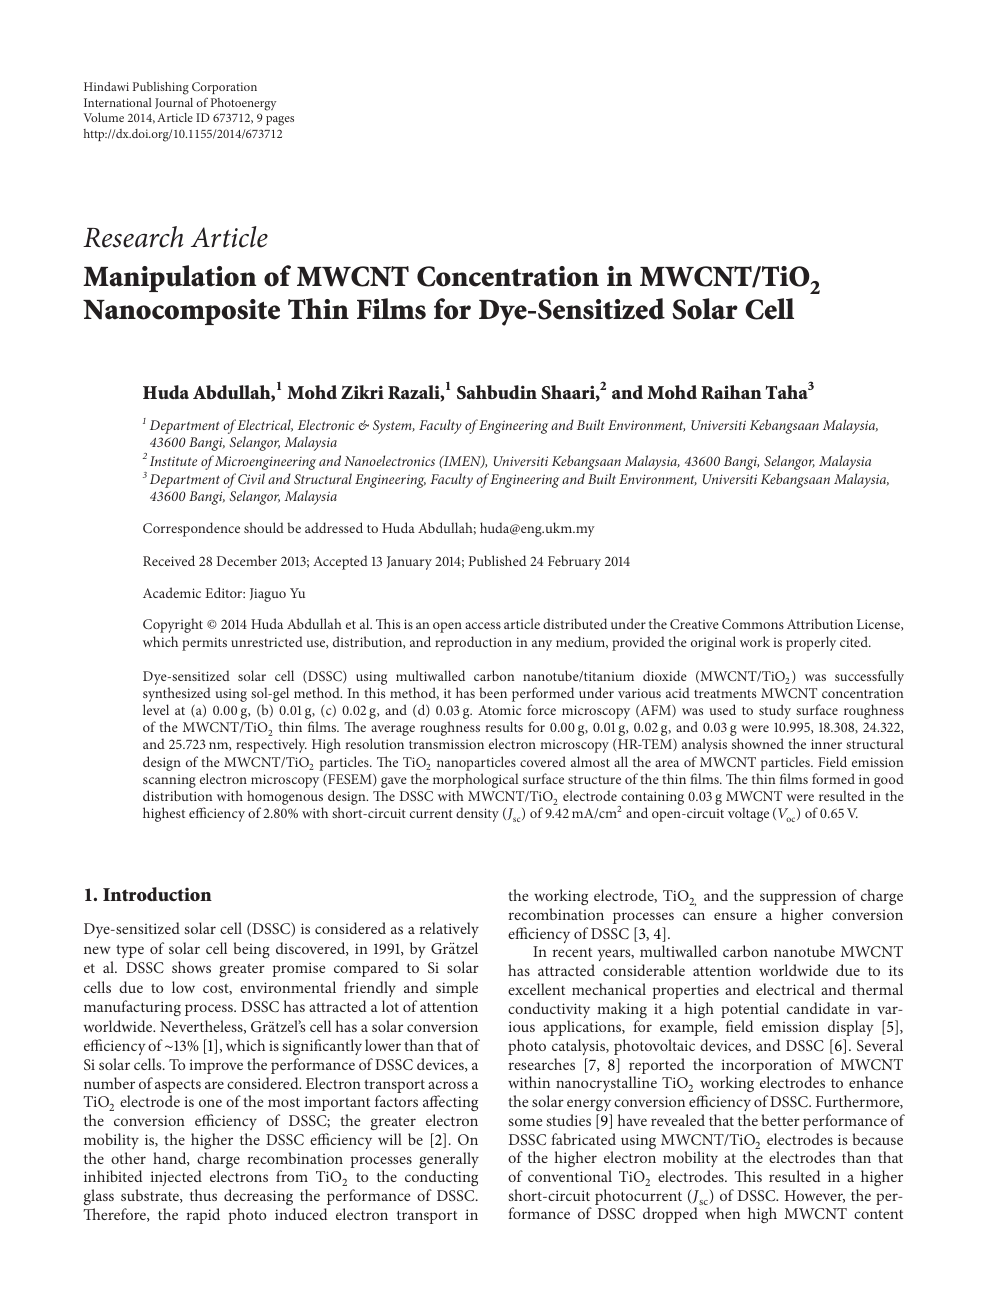 Manipulation of MWCNT Concentration in MWCNT/TiO 2 Nanocomposite